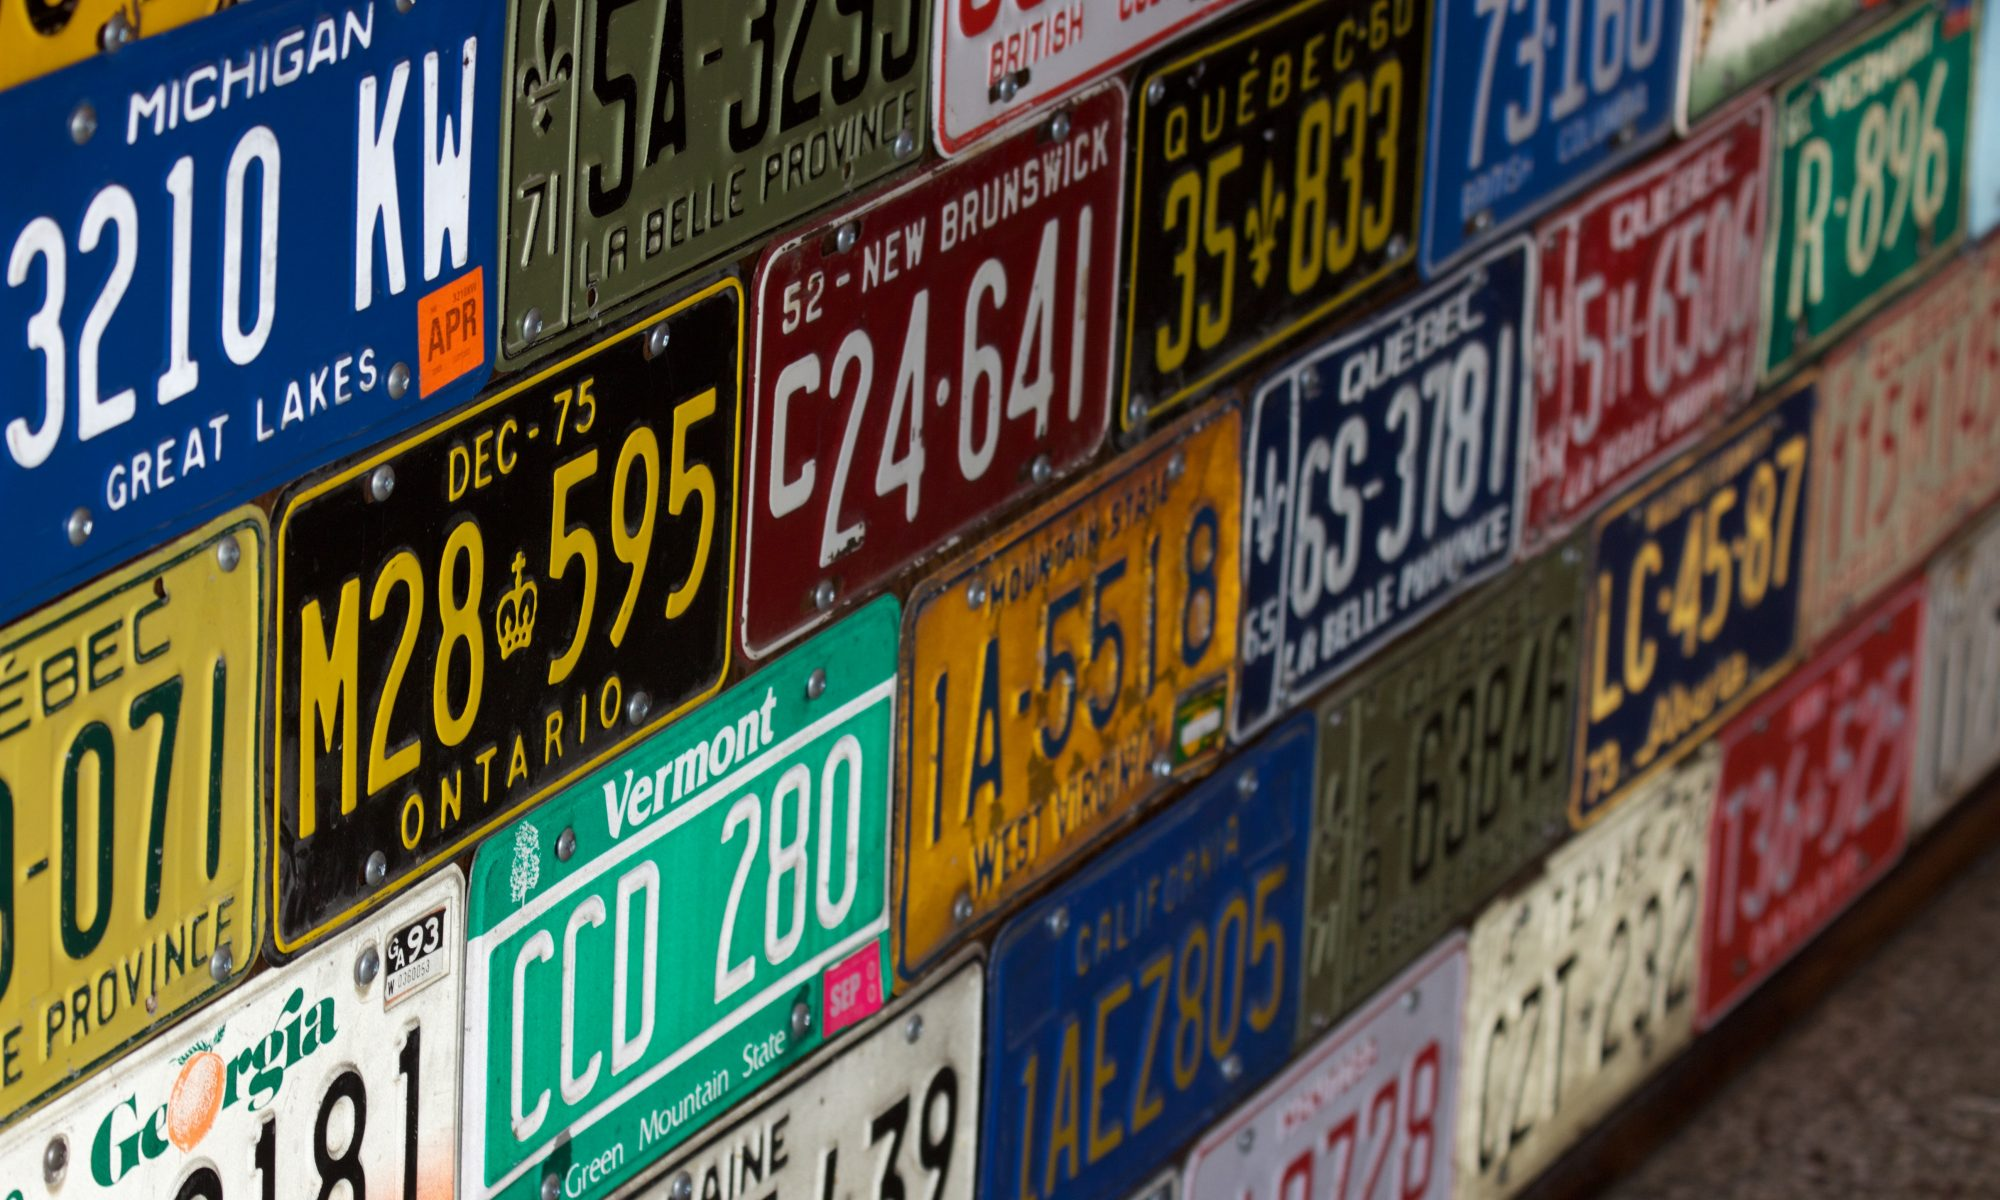 get new license plates